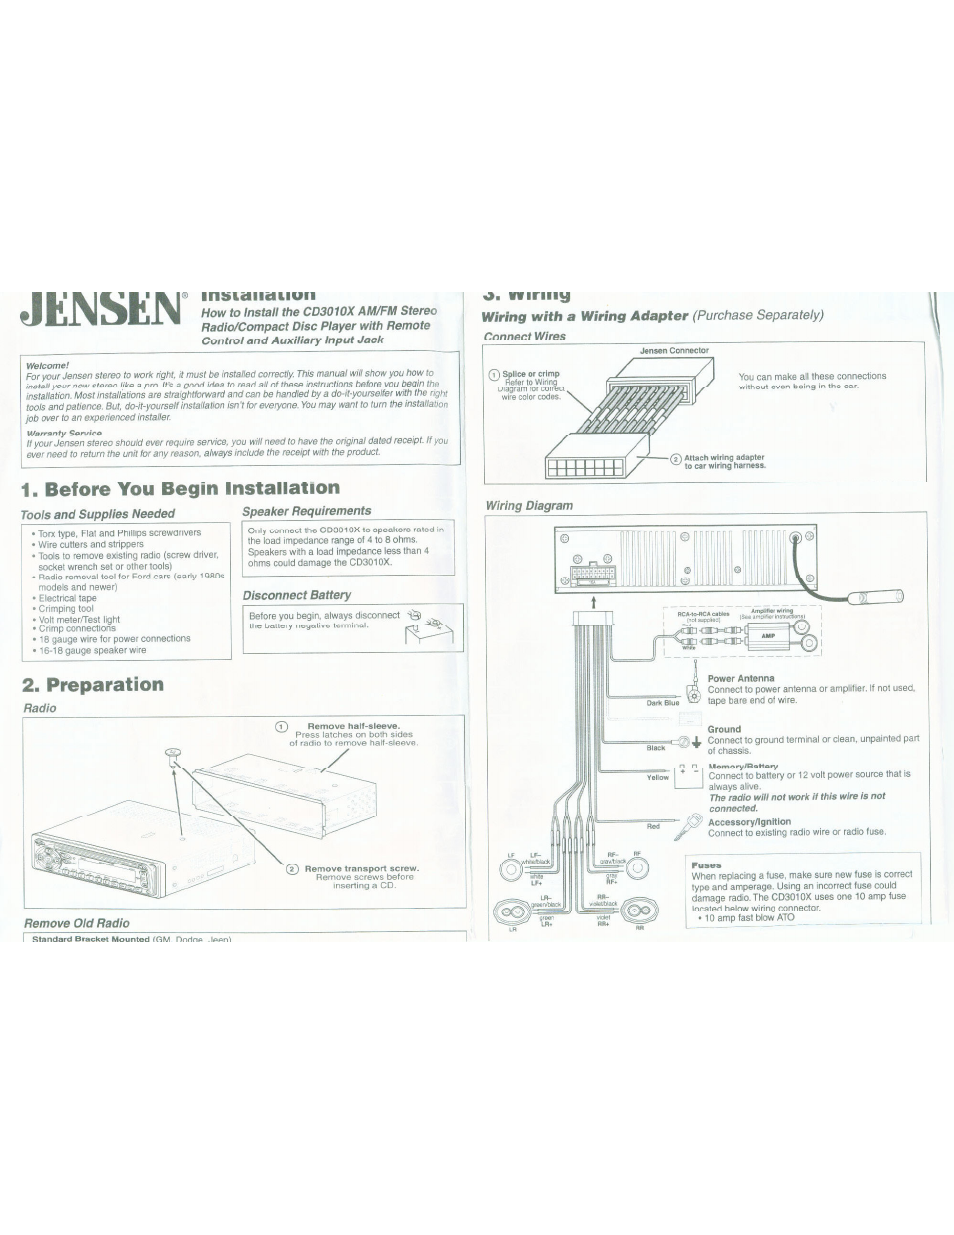 Jkmsejn, Before you begin installation, Preparation | ASA Electronics  CD3010X User Manual | Page 4 / 6